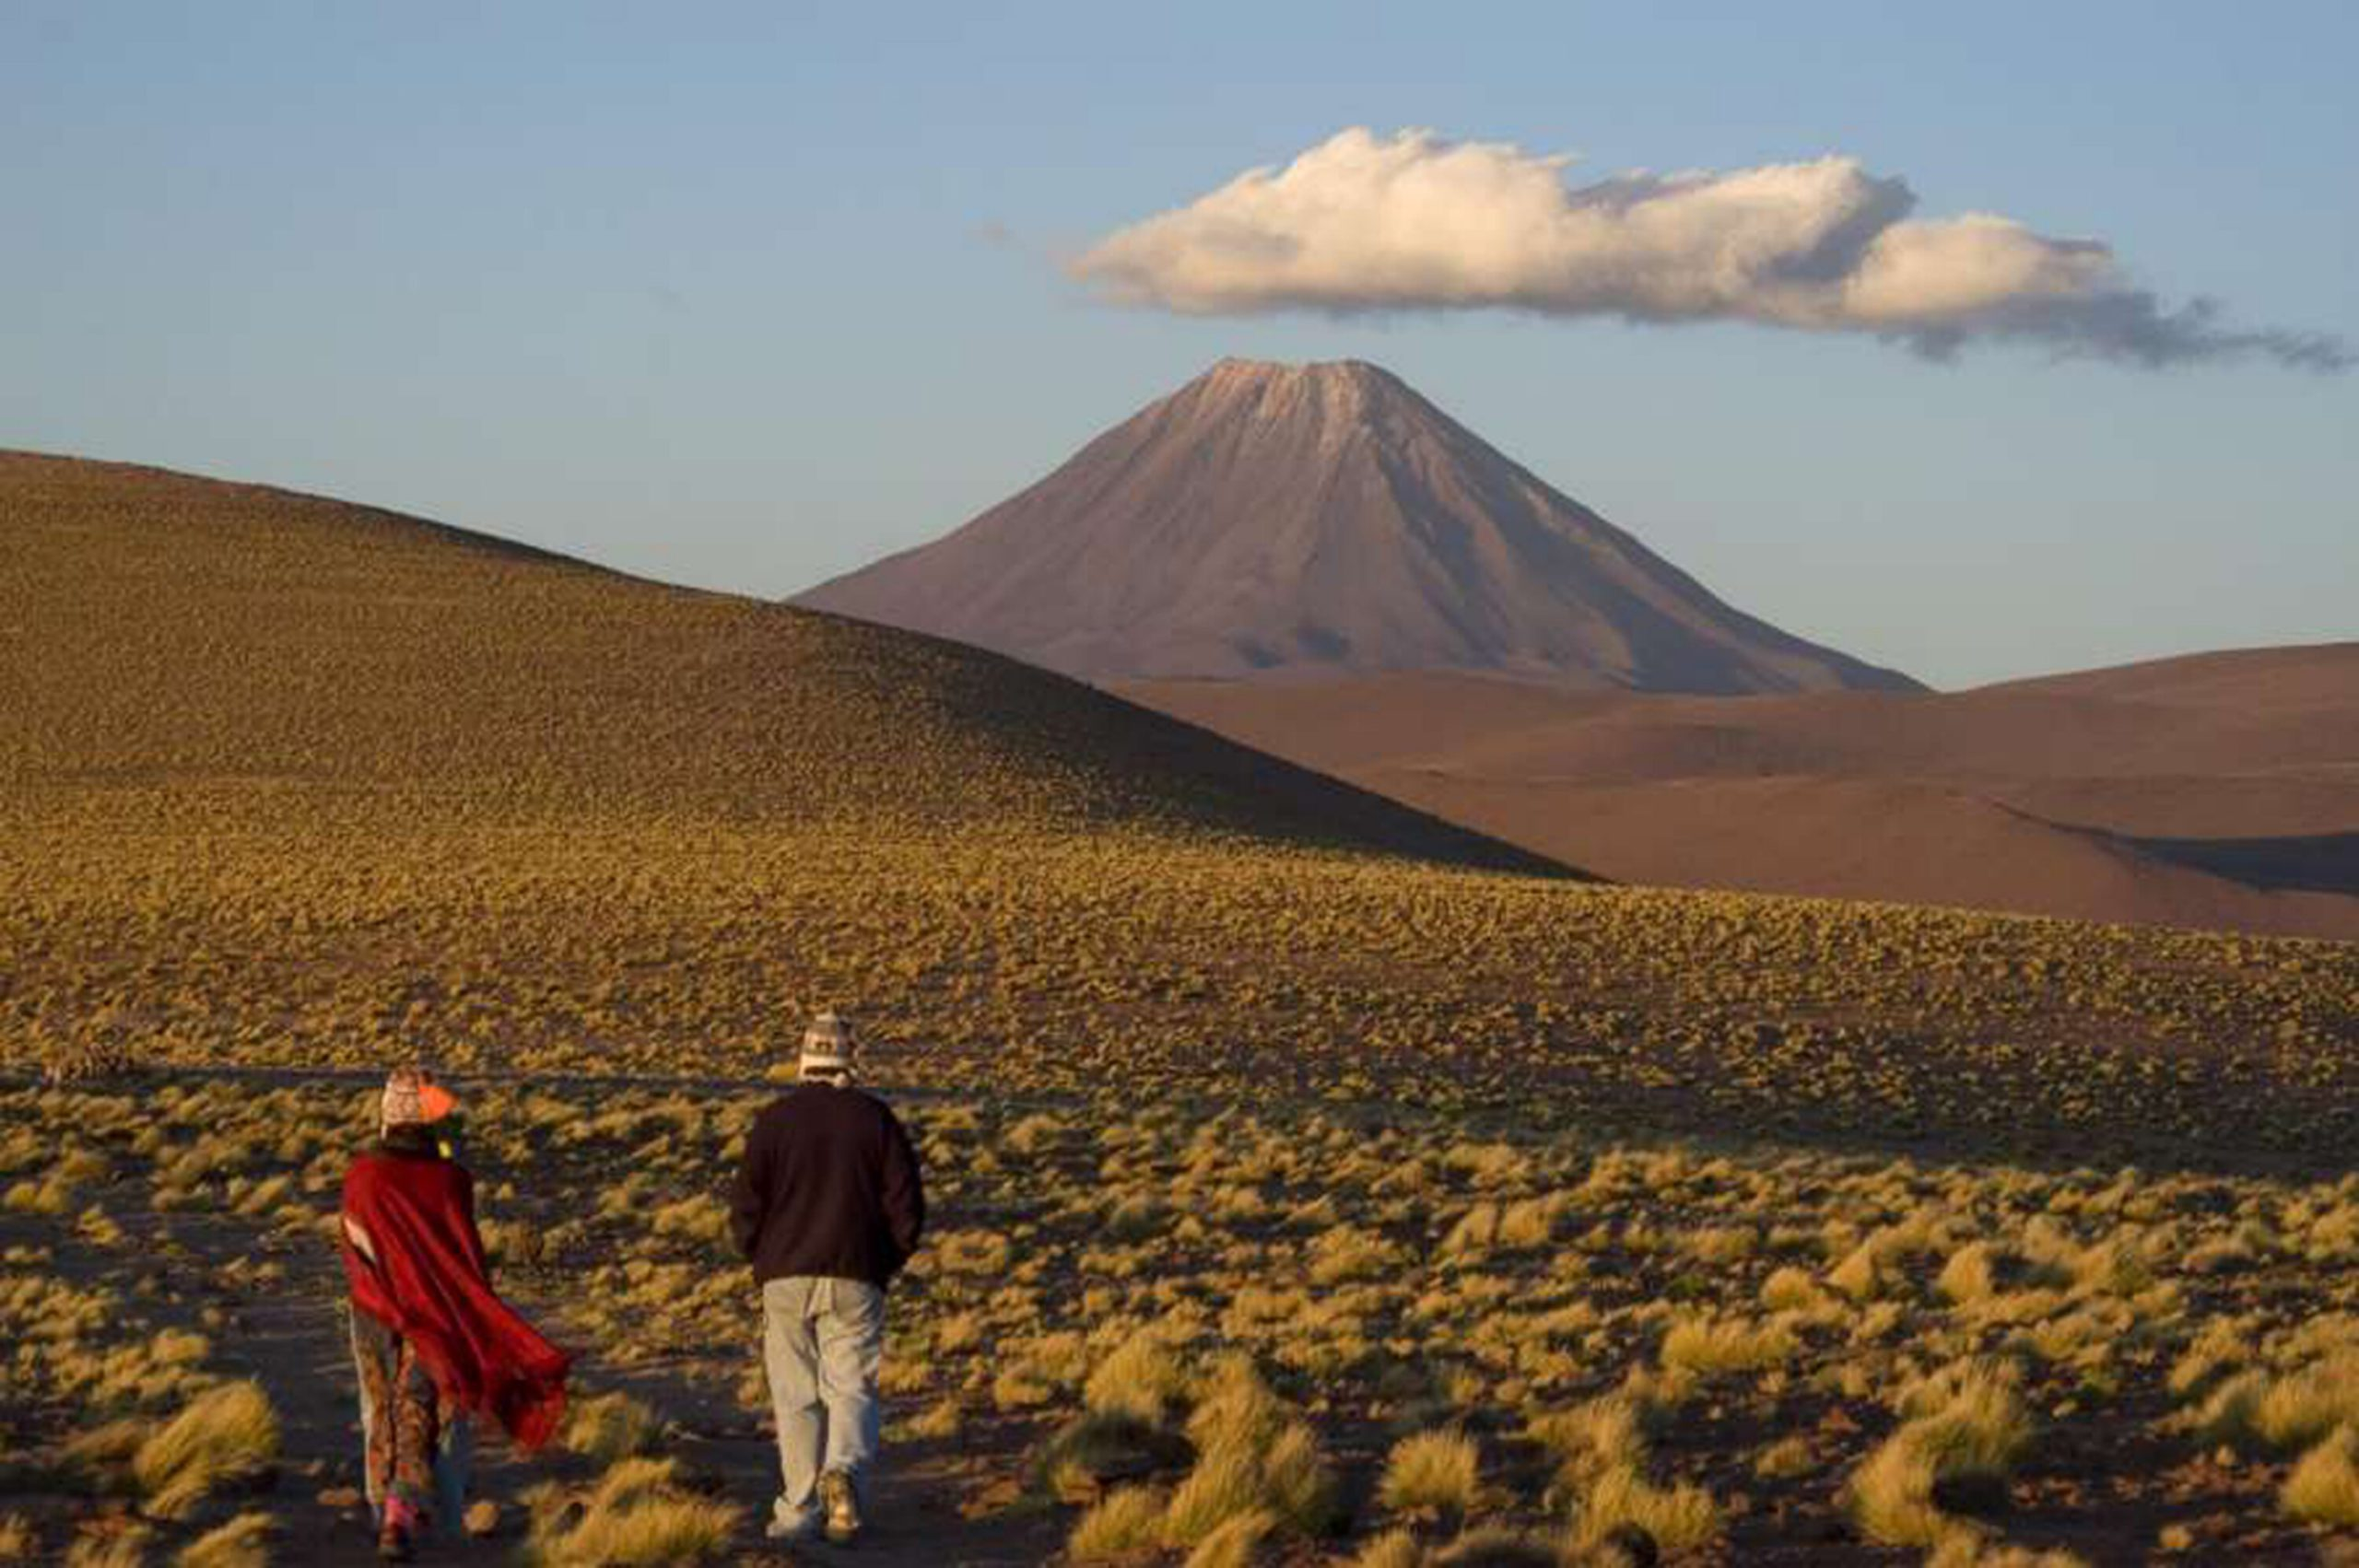 couple walking through desert with volcano